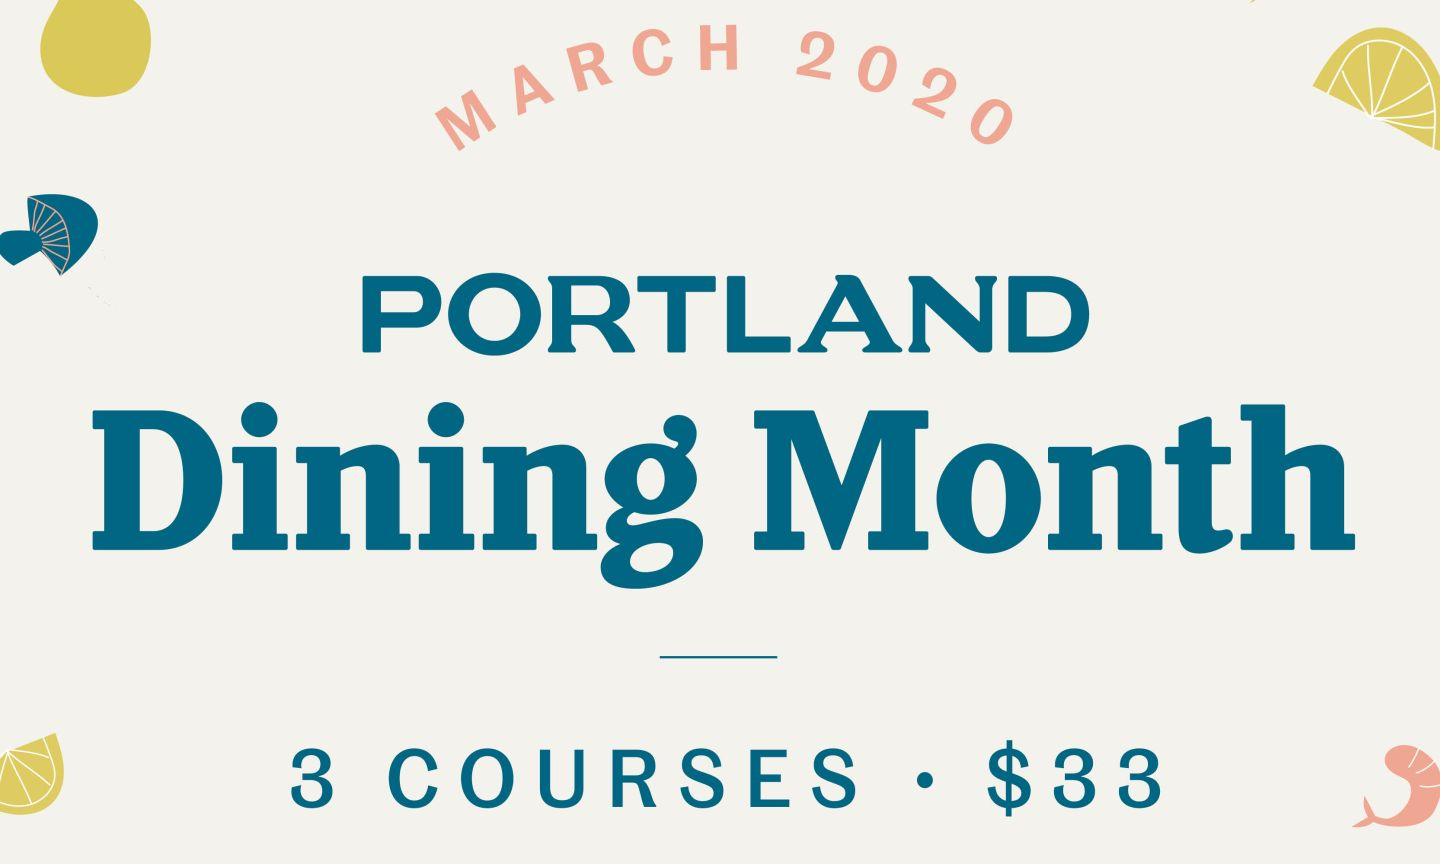 About Portland Dining Month Travel Portland